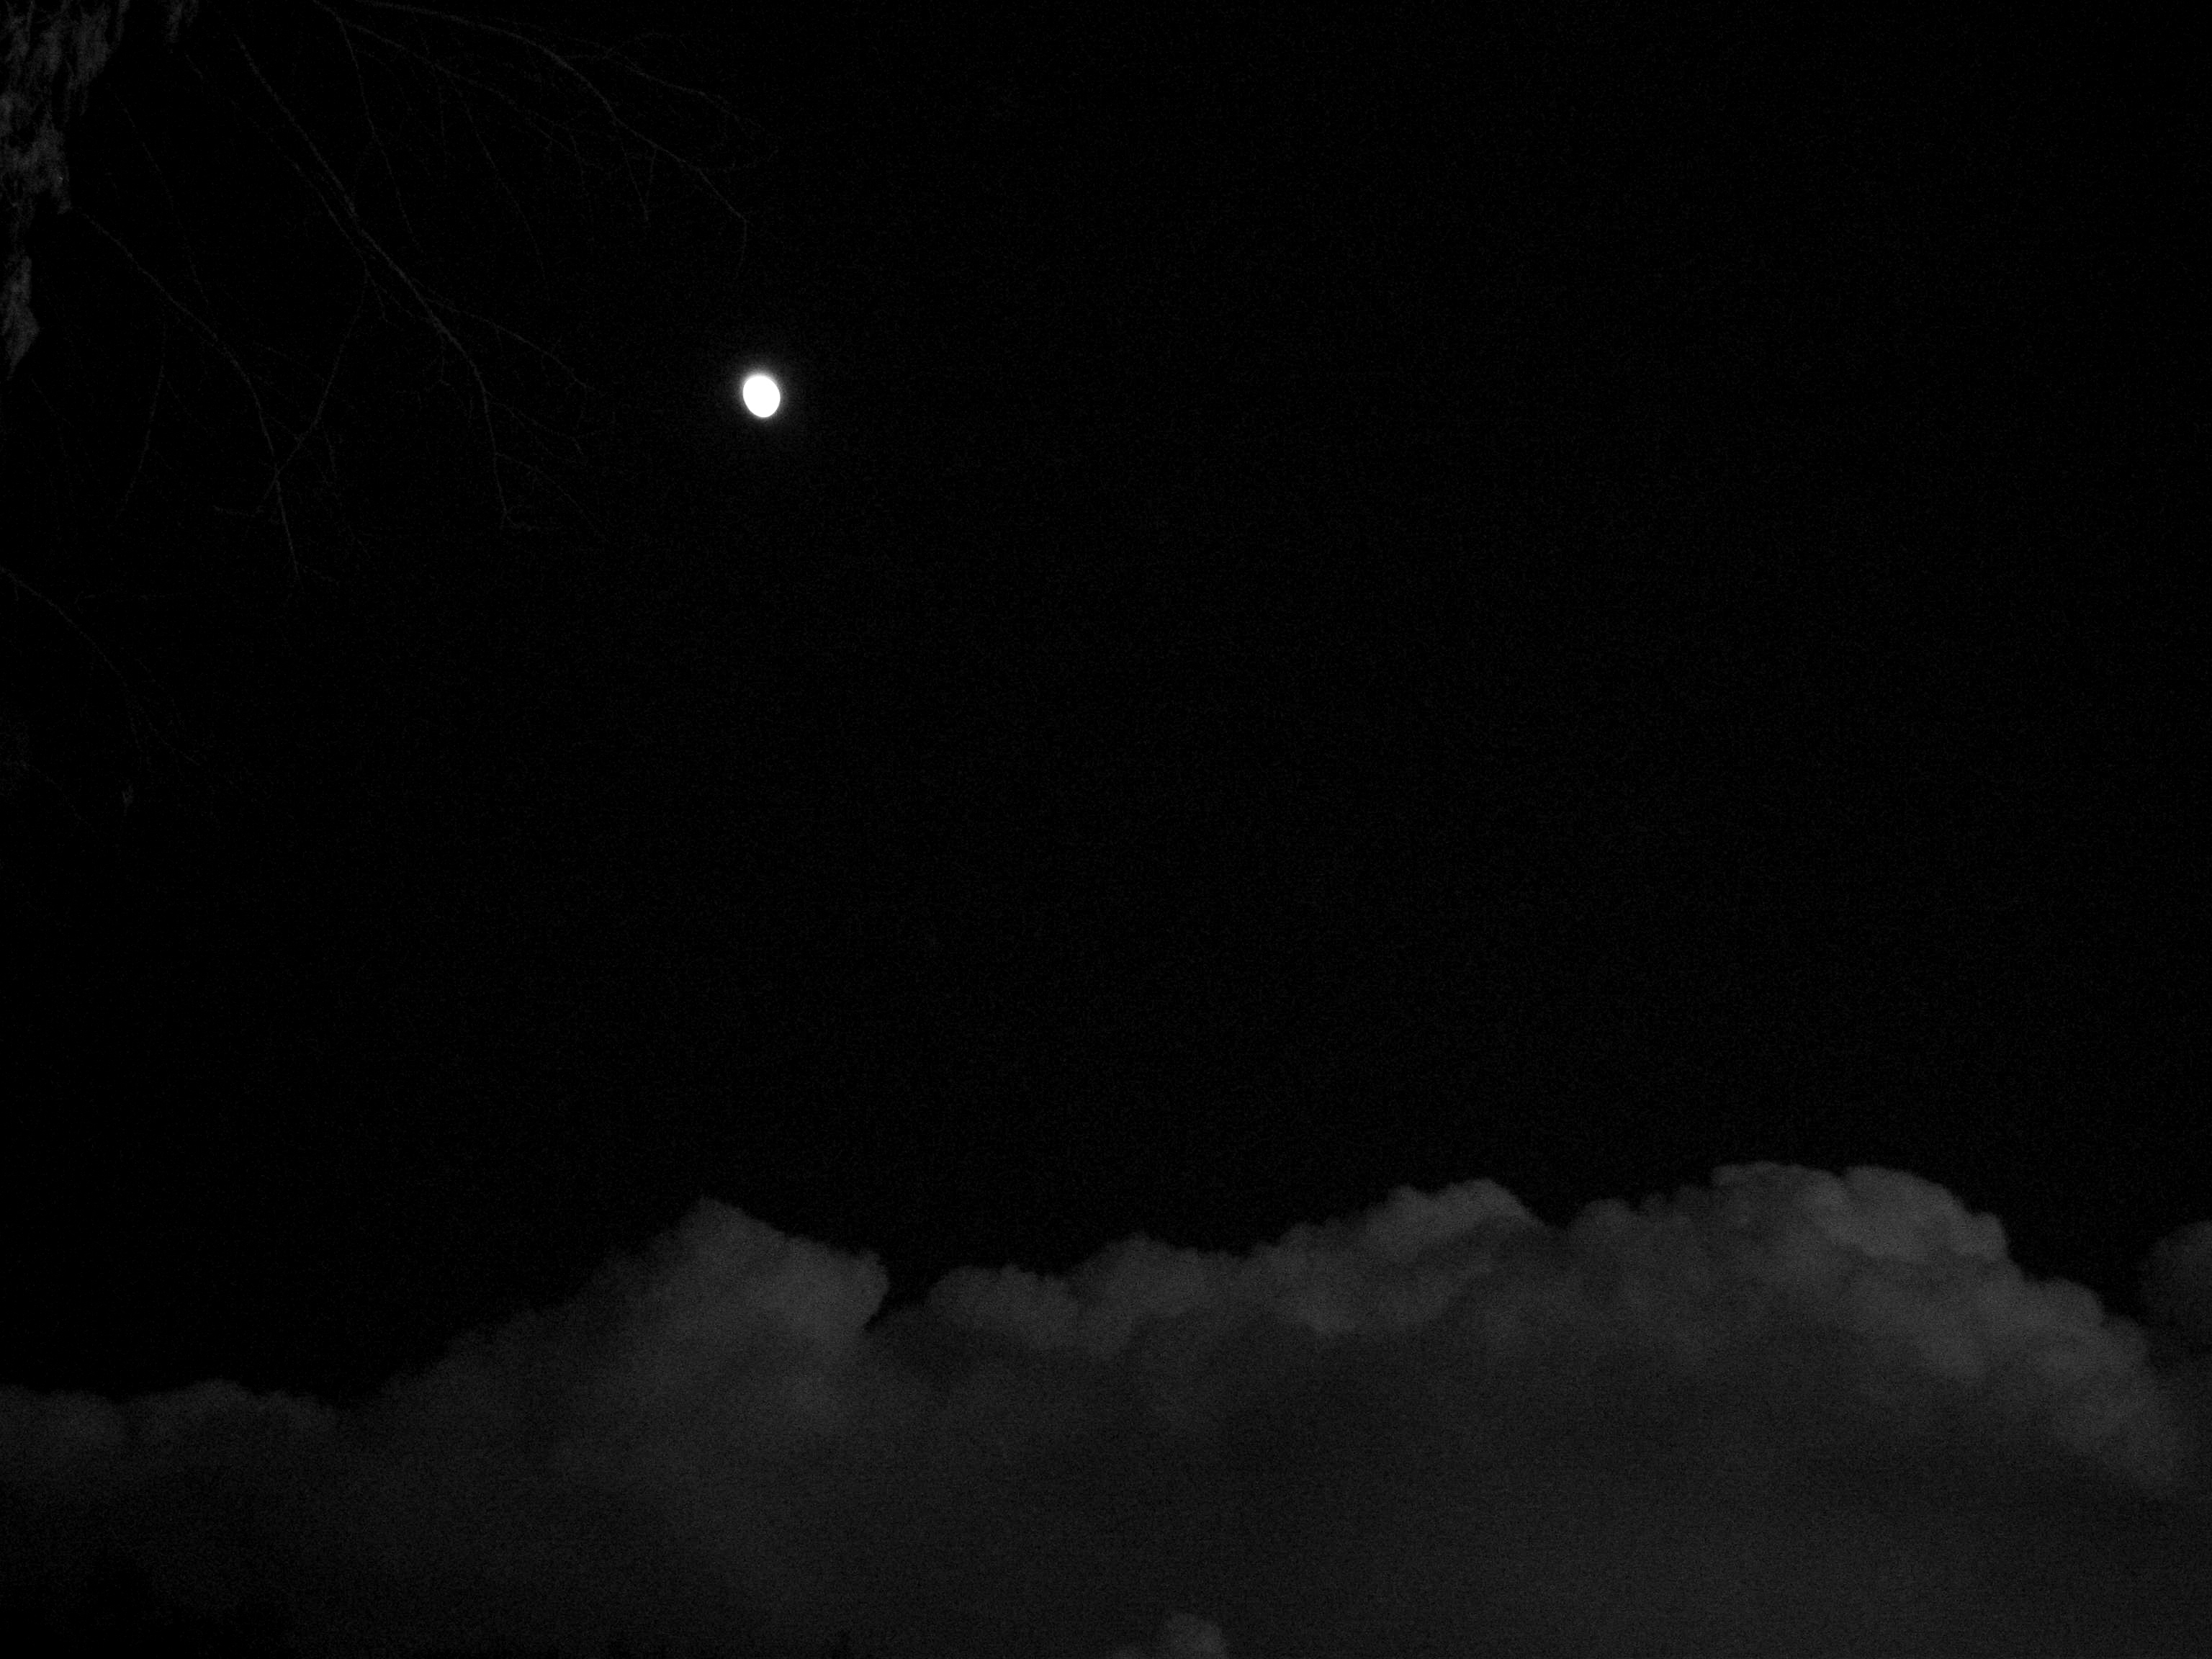 Another Creepy Midnight Sky by mtnlesssndtrkSTOCK on DeviantArt